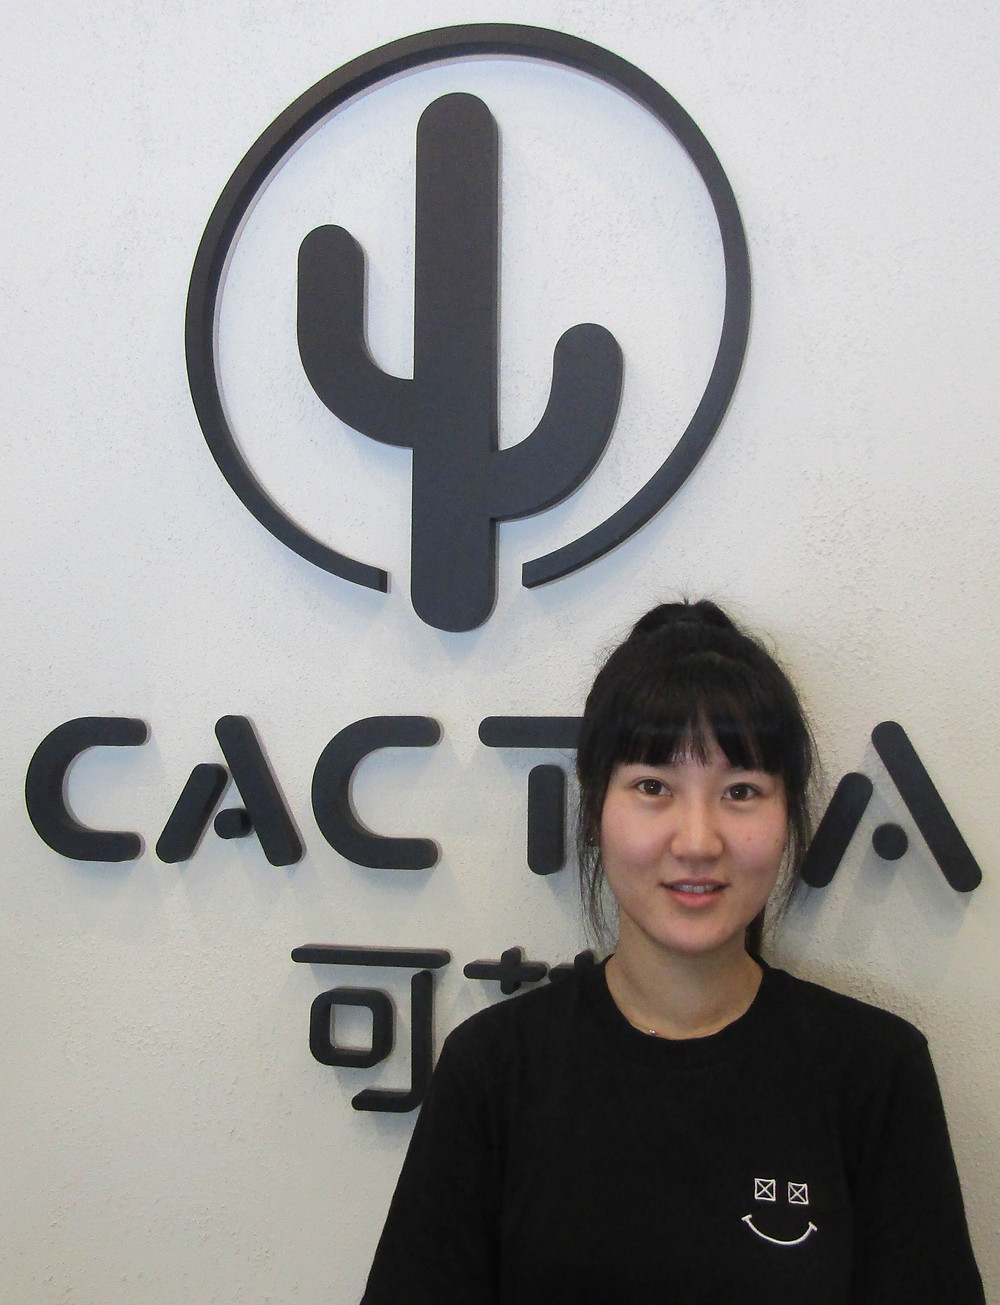 Cecilia from CacTea.